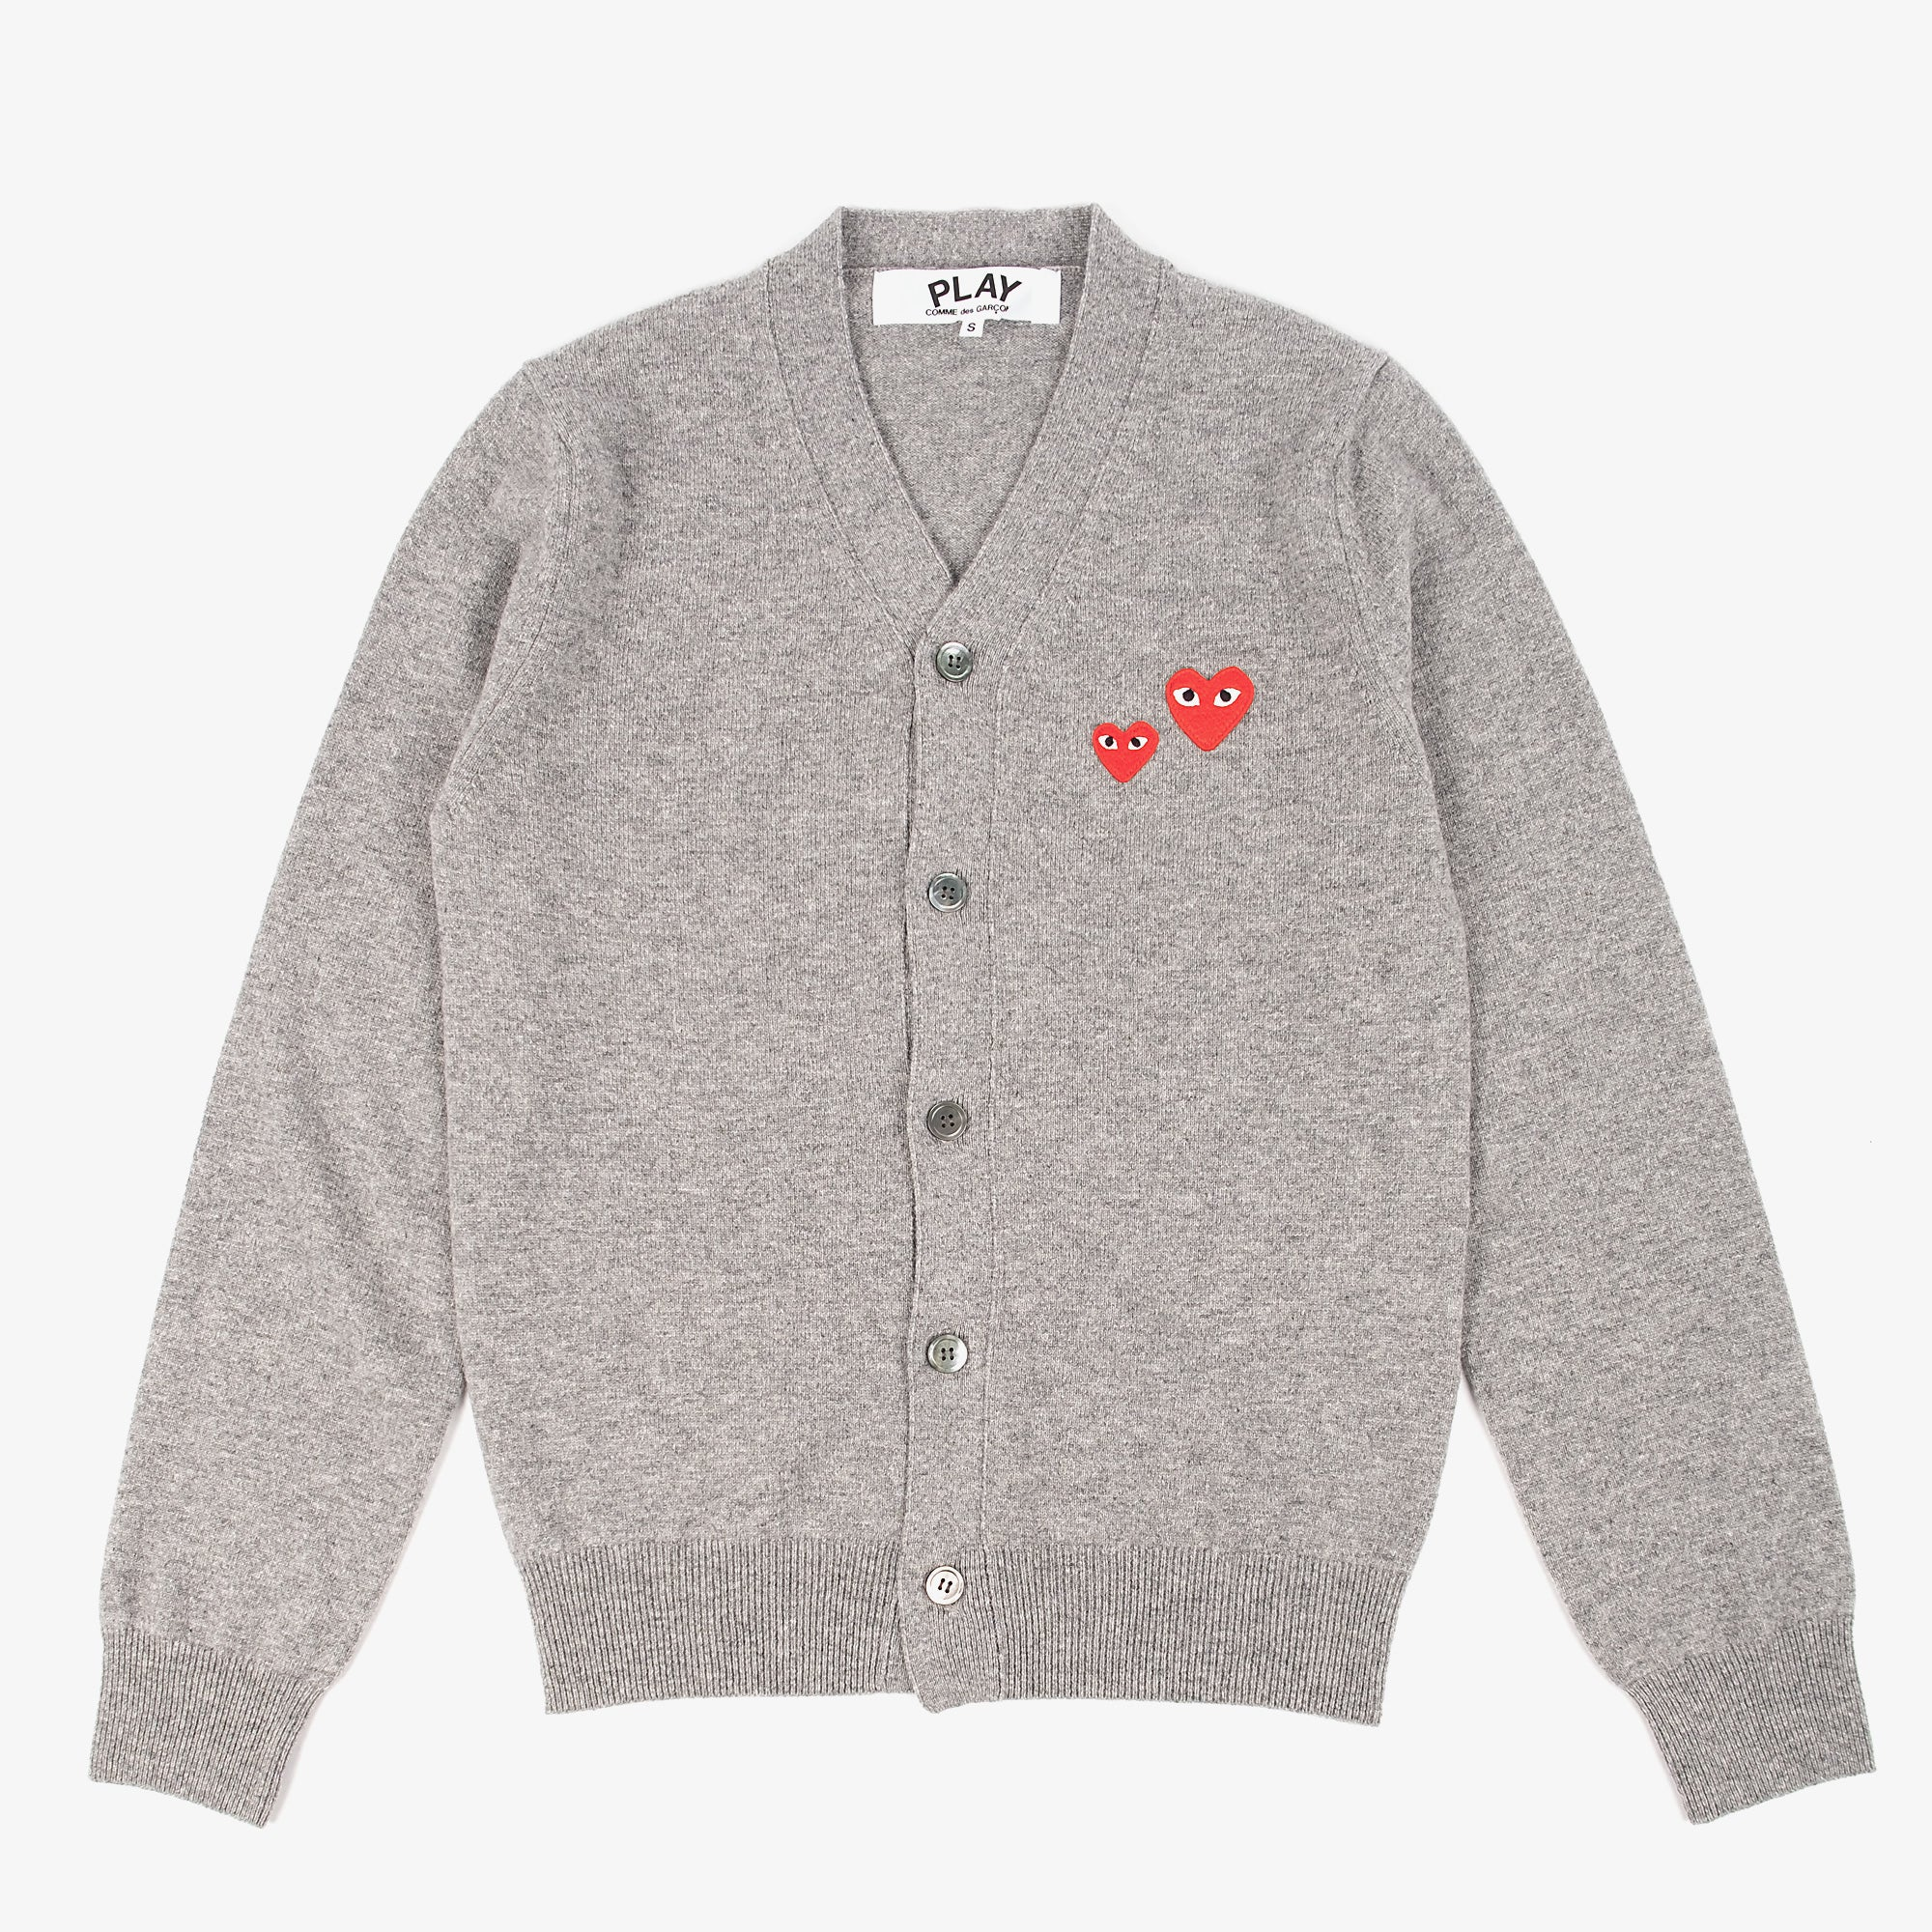 Comme des Garçons - PLAY Two Red Emblem Cardigan - Grey 1